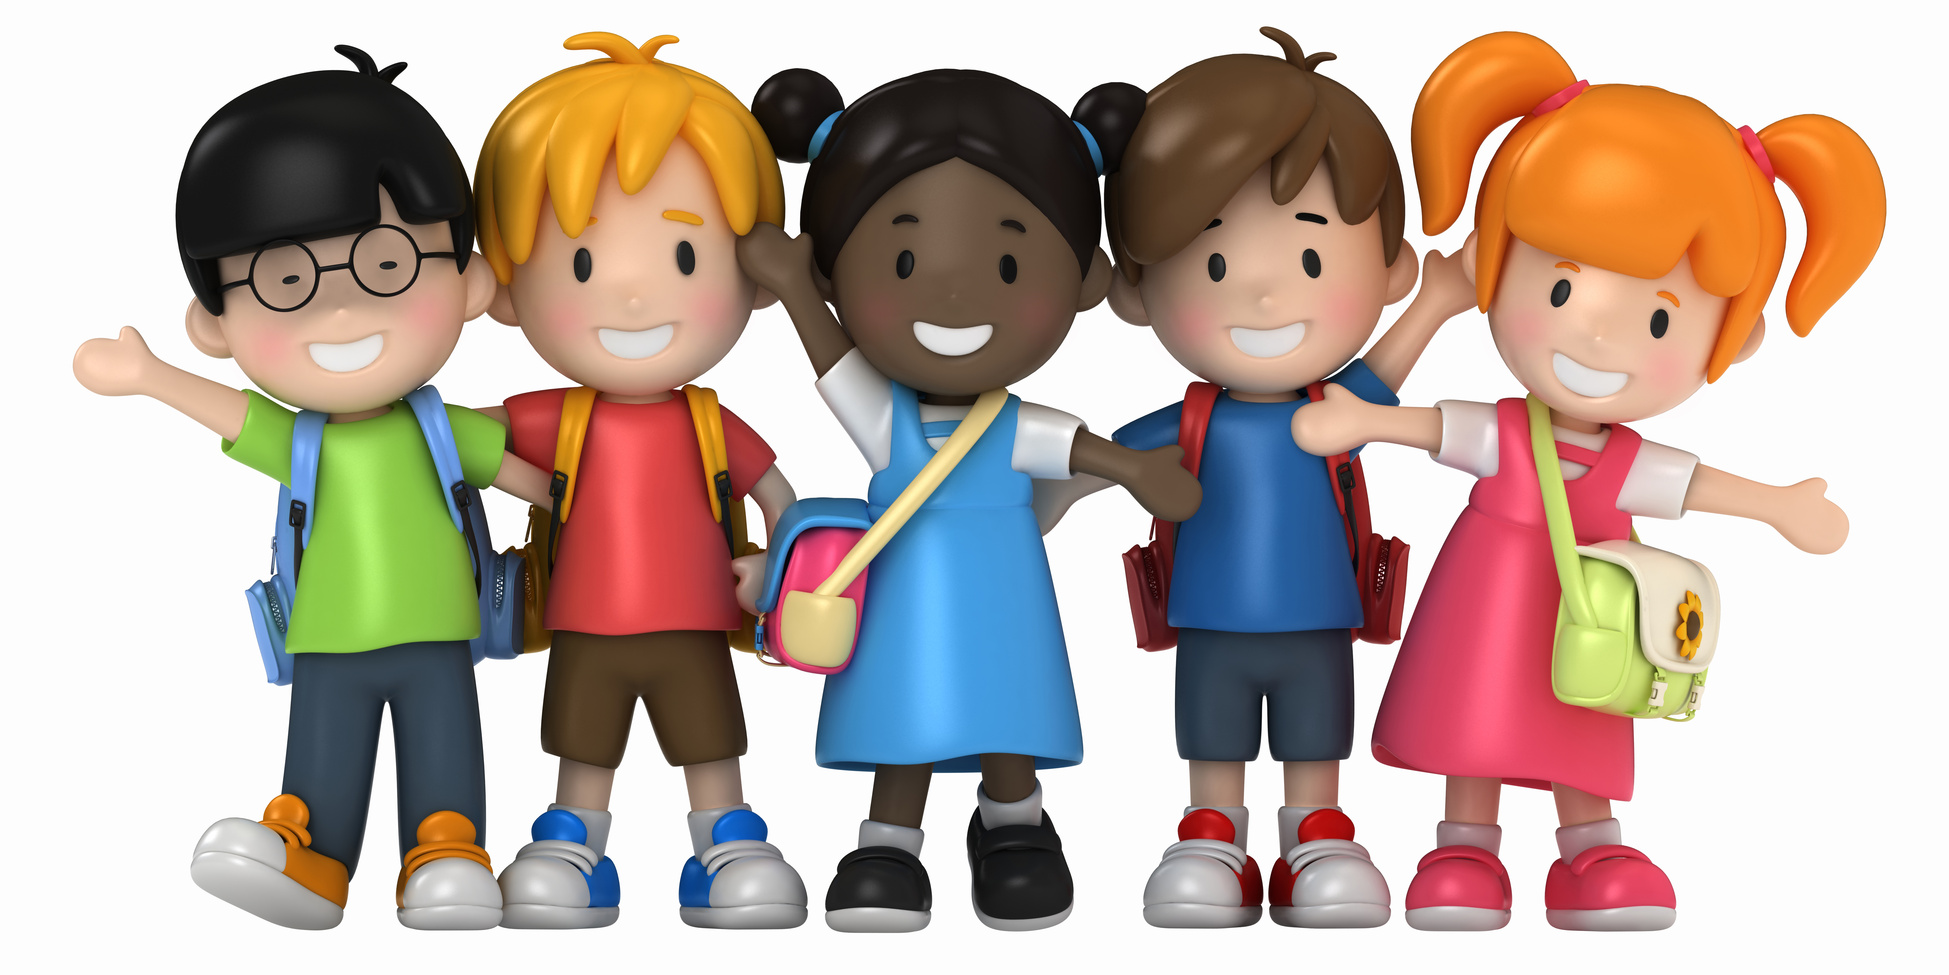 3D Render of School Kids